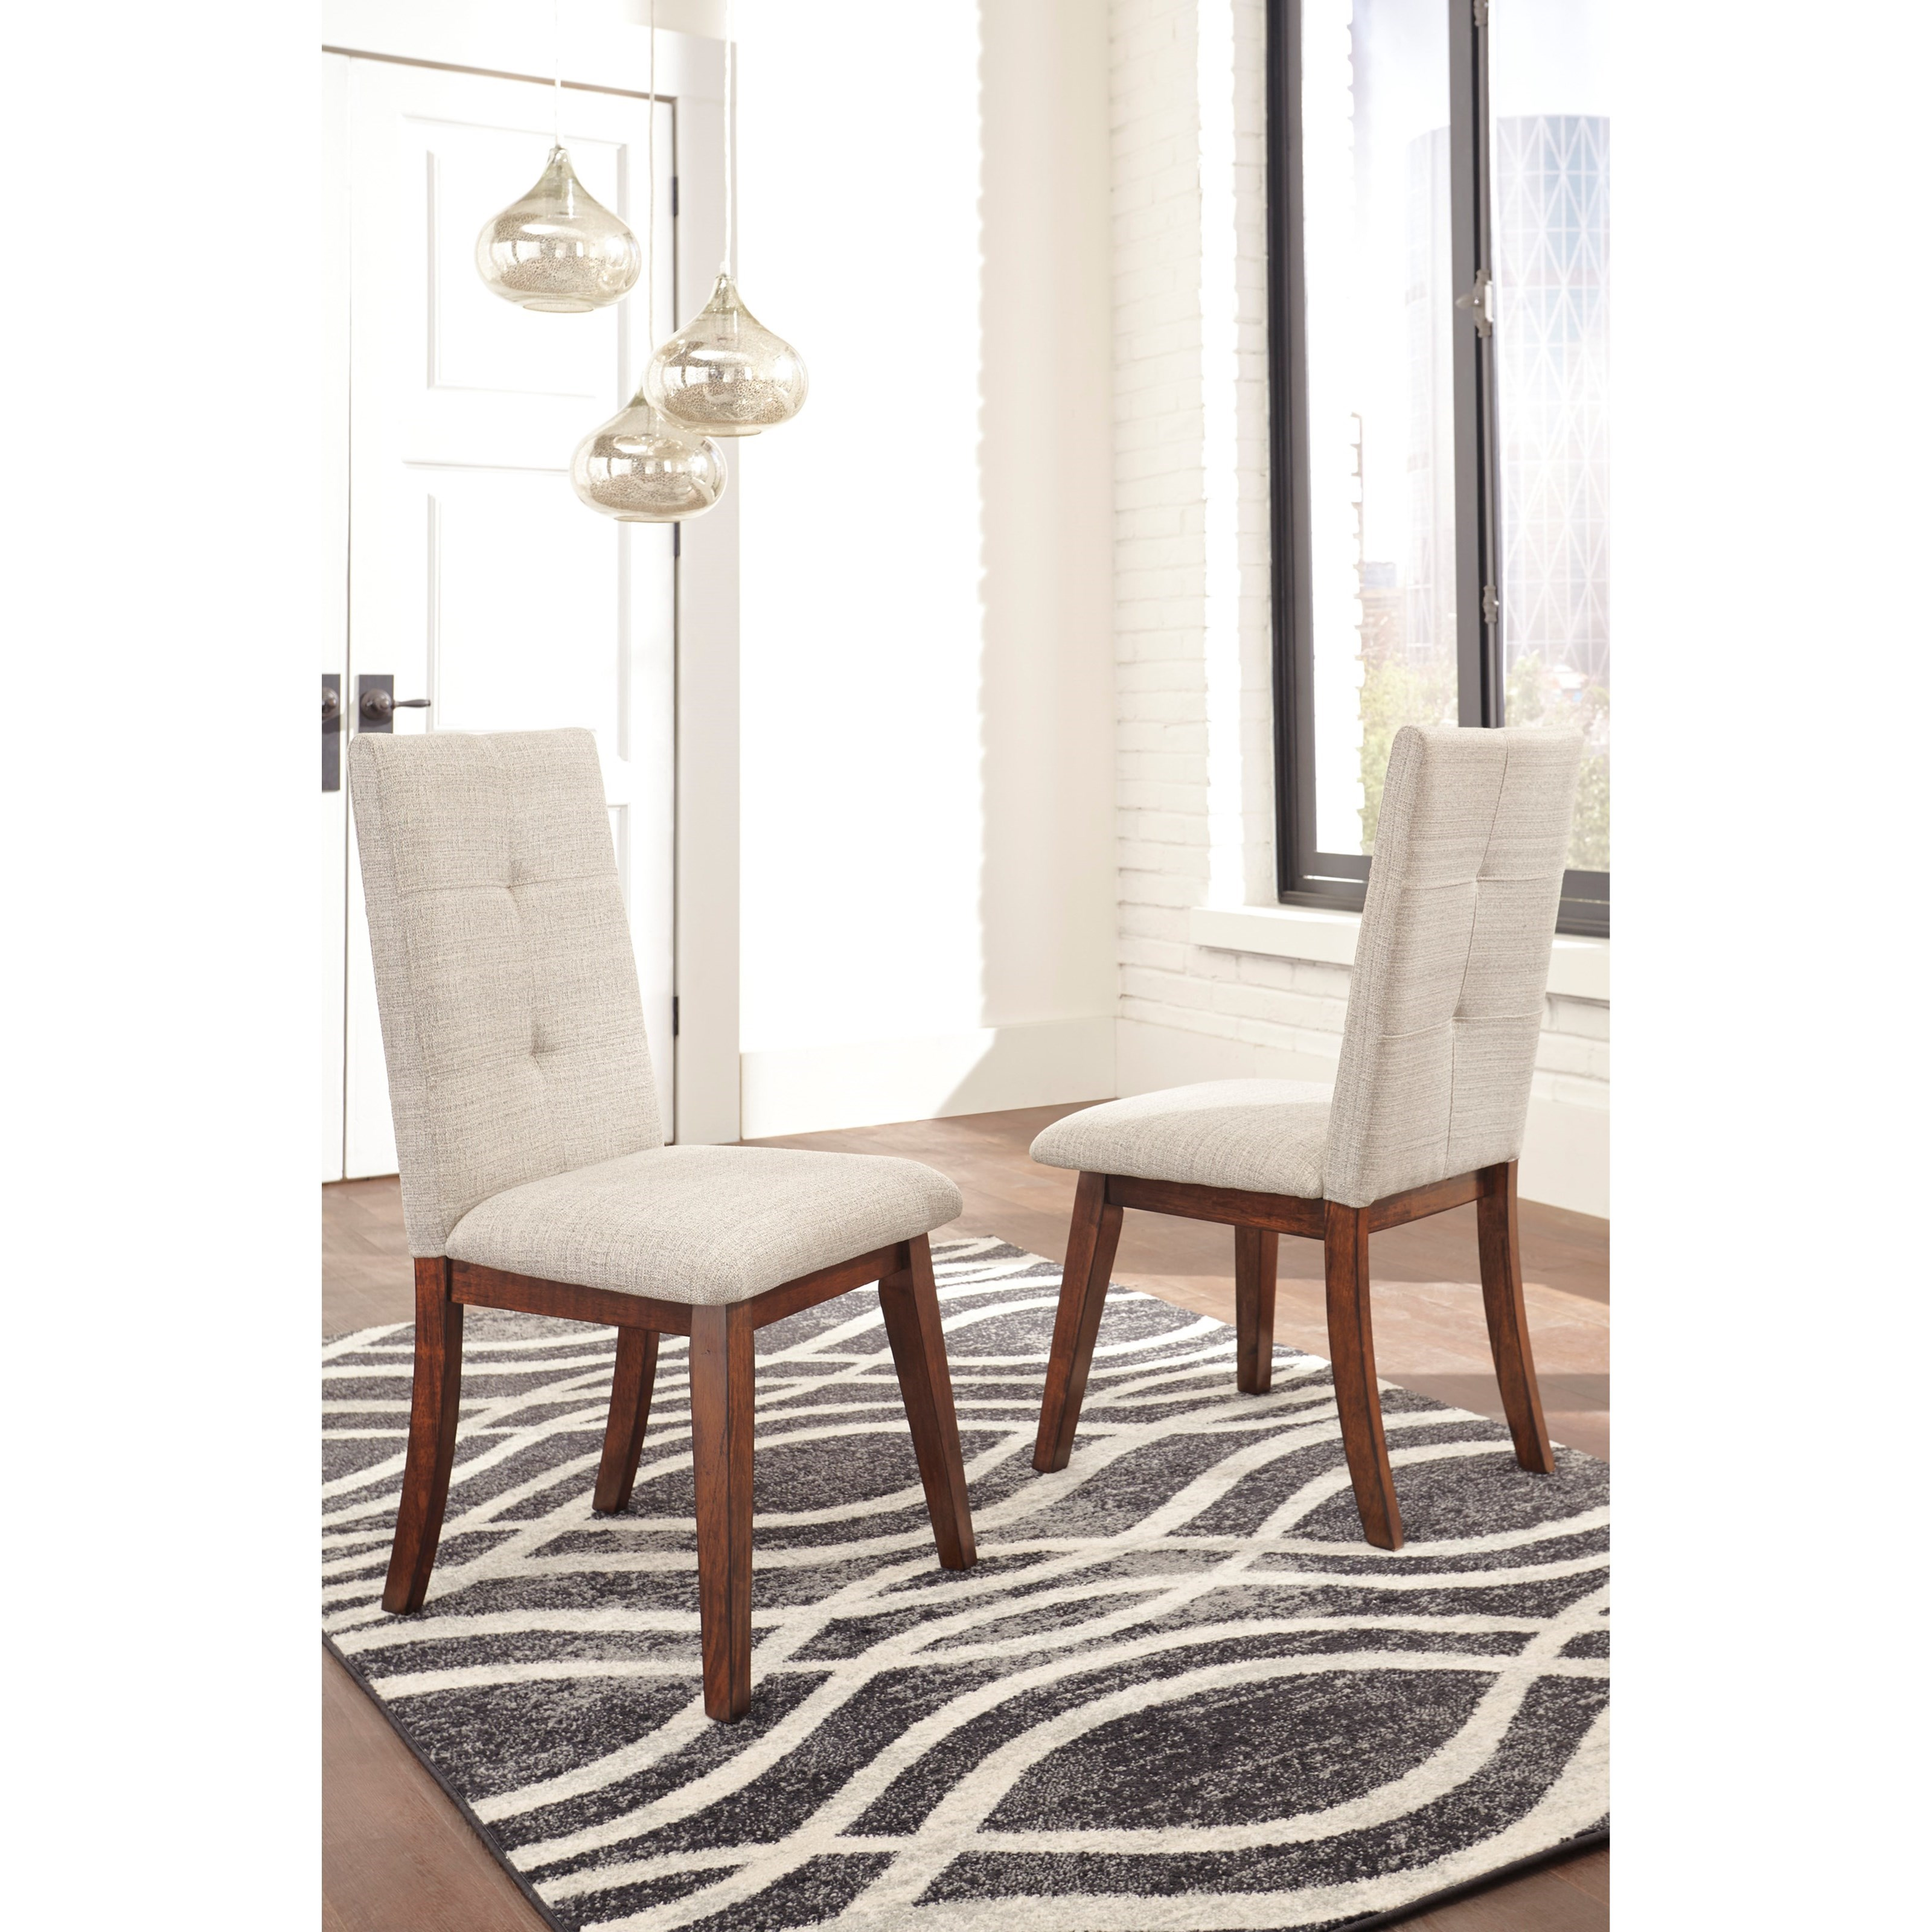 Formal Dining Room Furniture Manufacturers: Formal Dining Room Group By Signature Design By Ashley